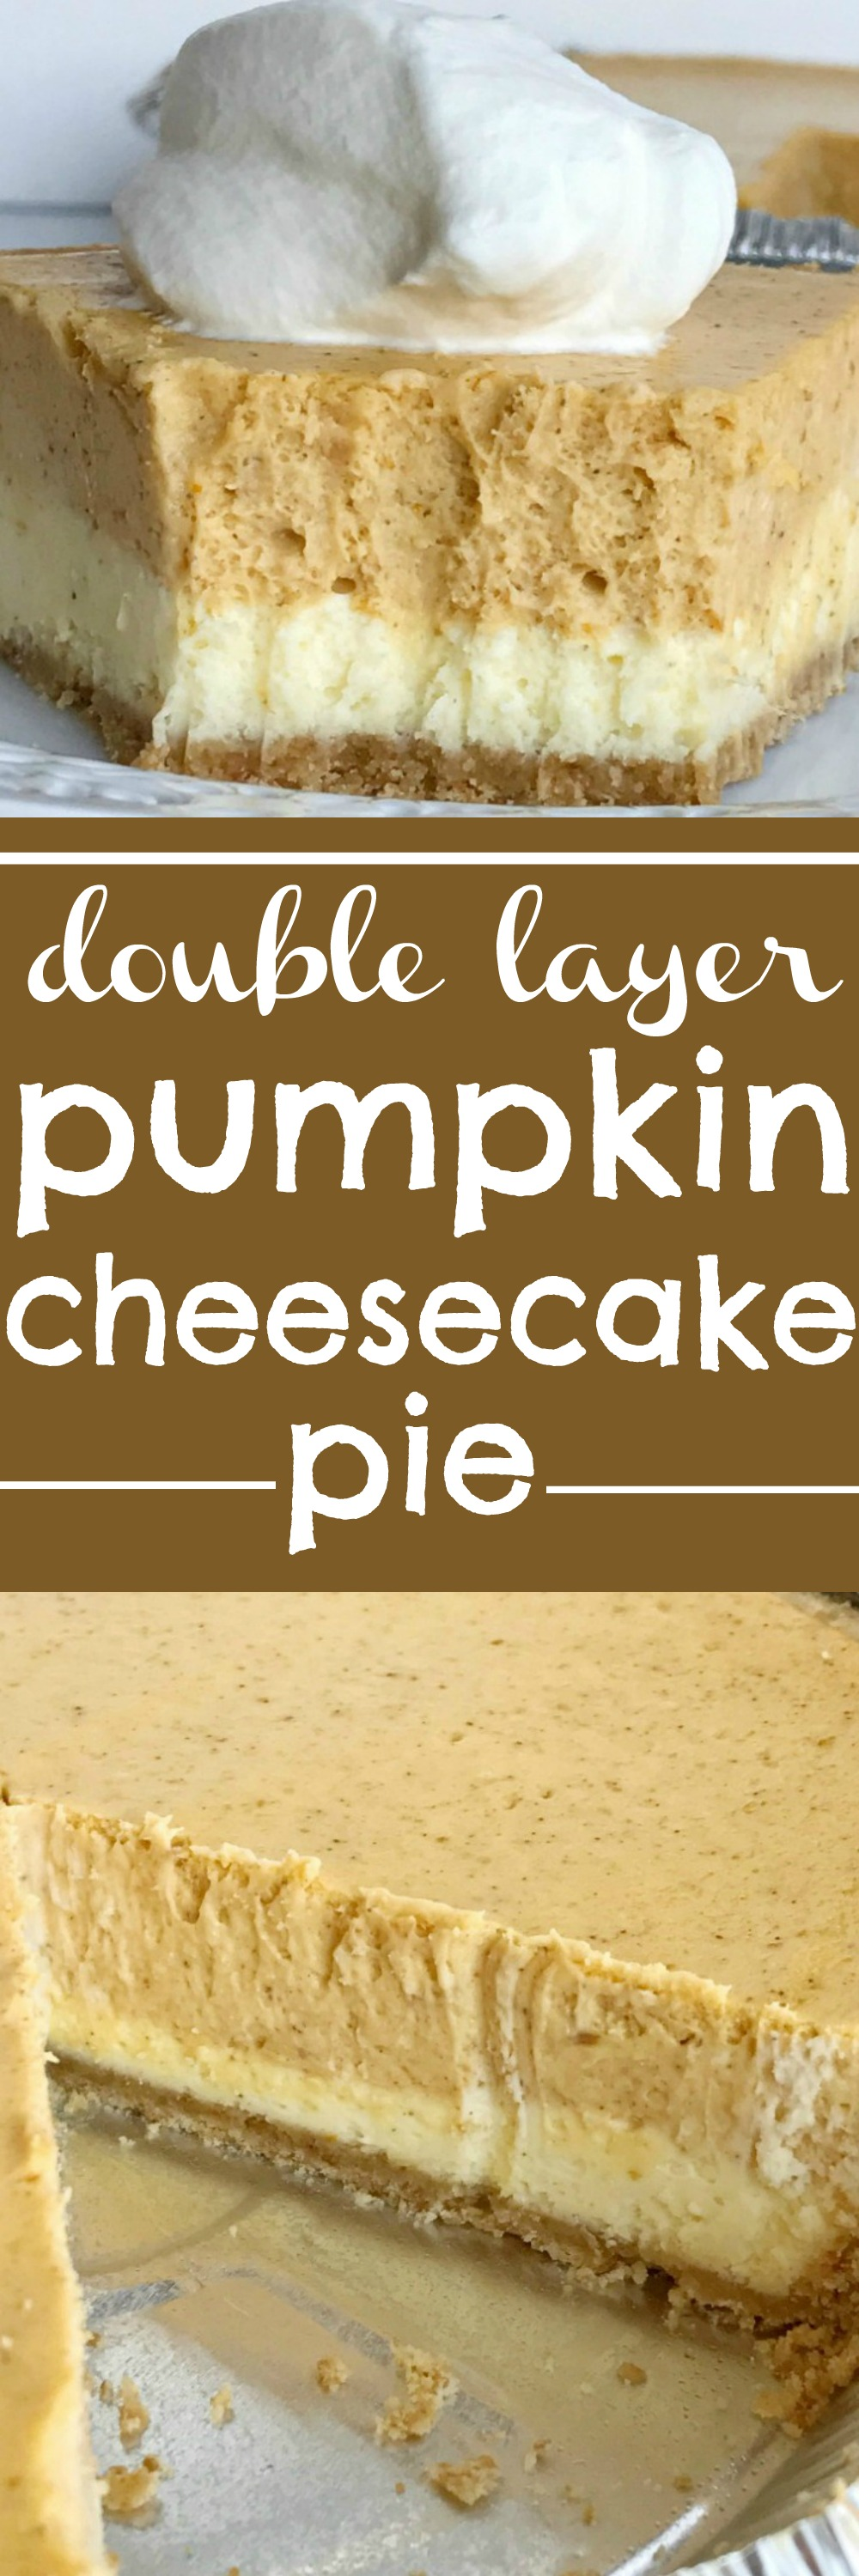 Double Layer Pumpkin Cheesecake Pie Together As Family Cheese Cake Original Has Two Layers Of Inside A Prepared Graham Cracker